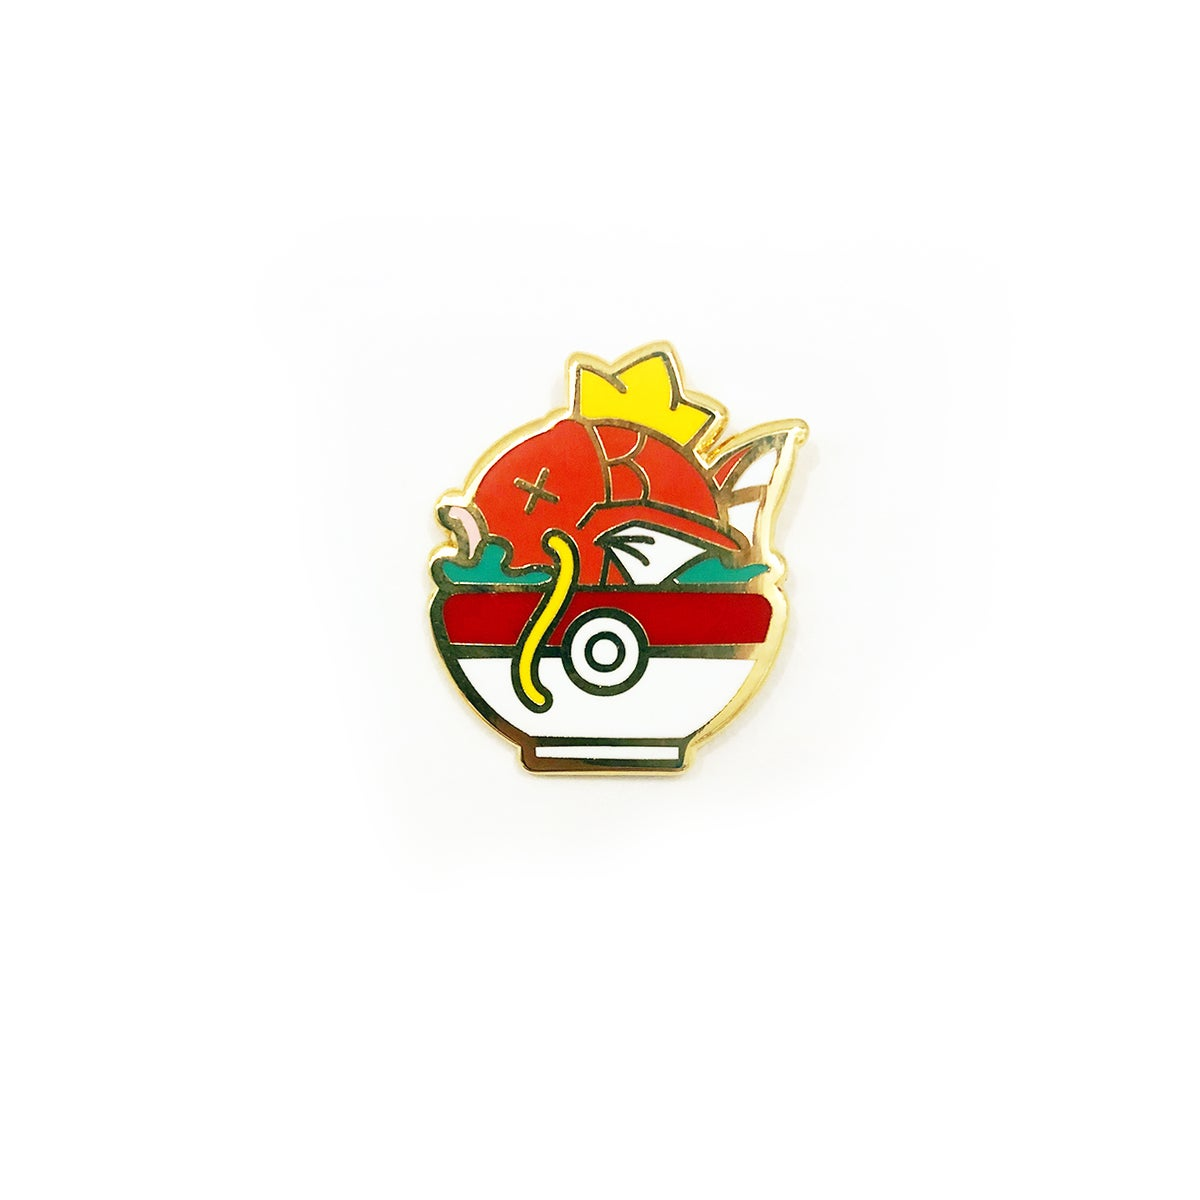 Image of PokeBowl 2.0 Pin